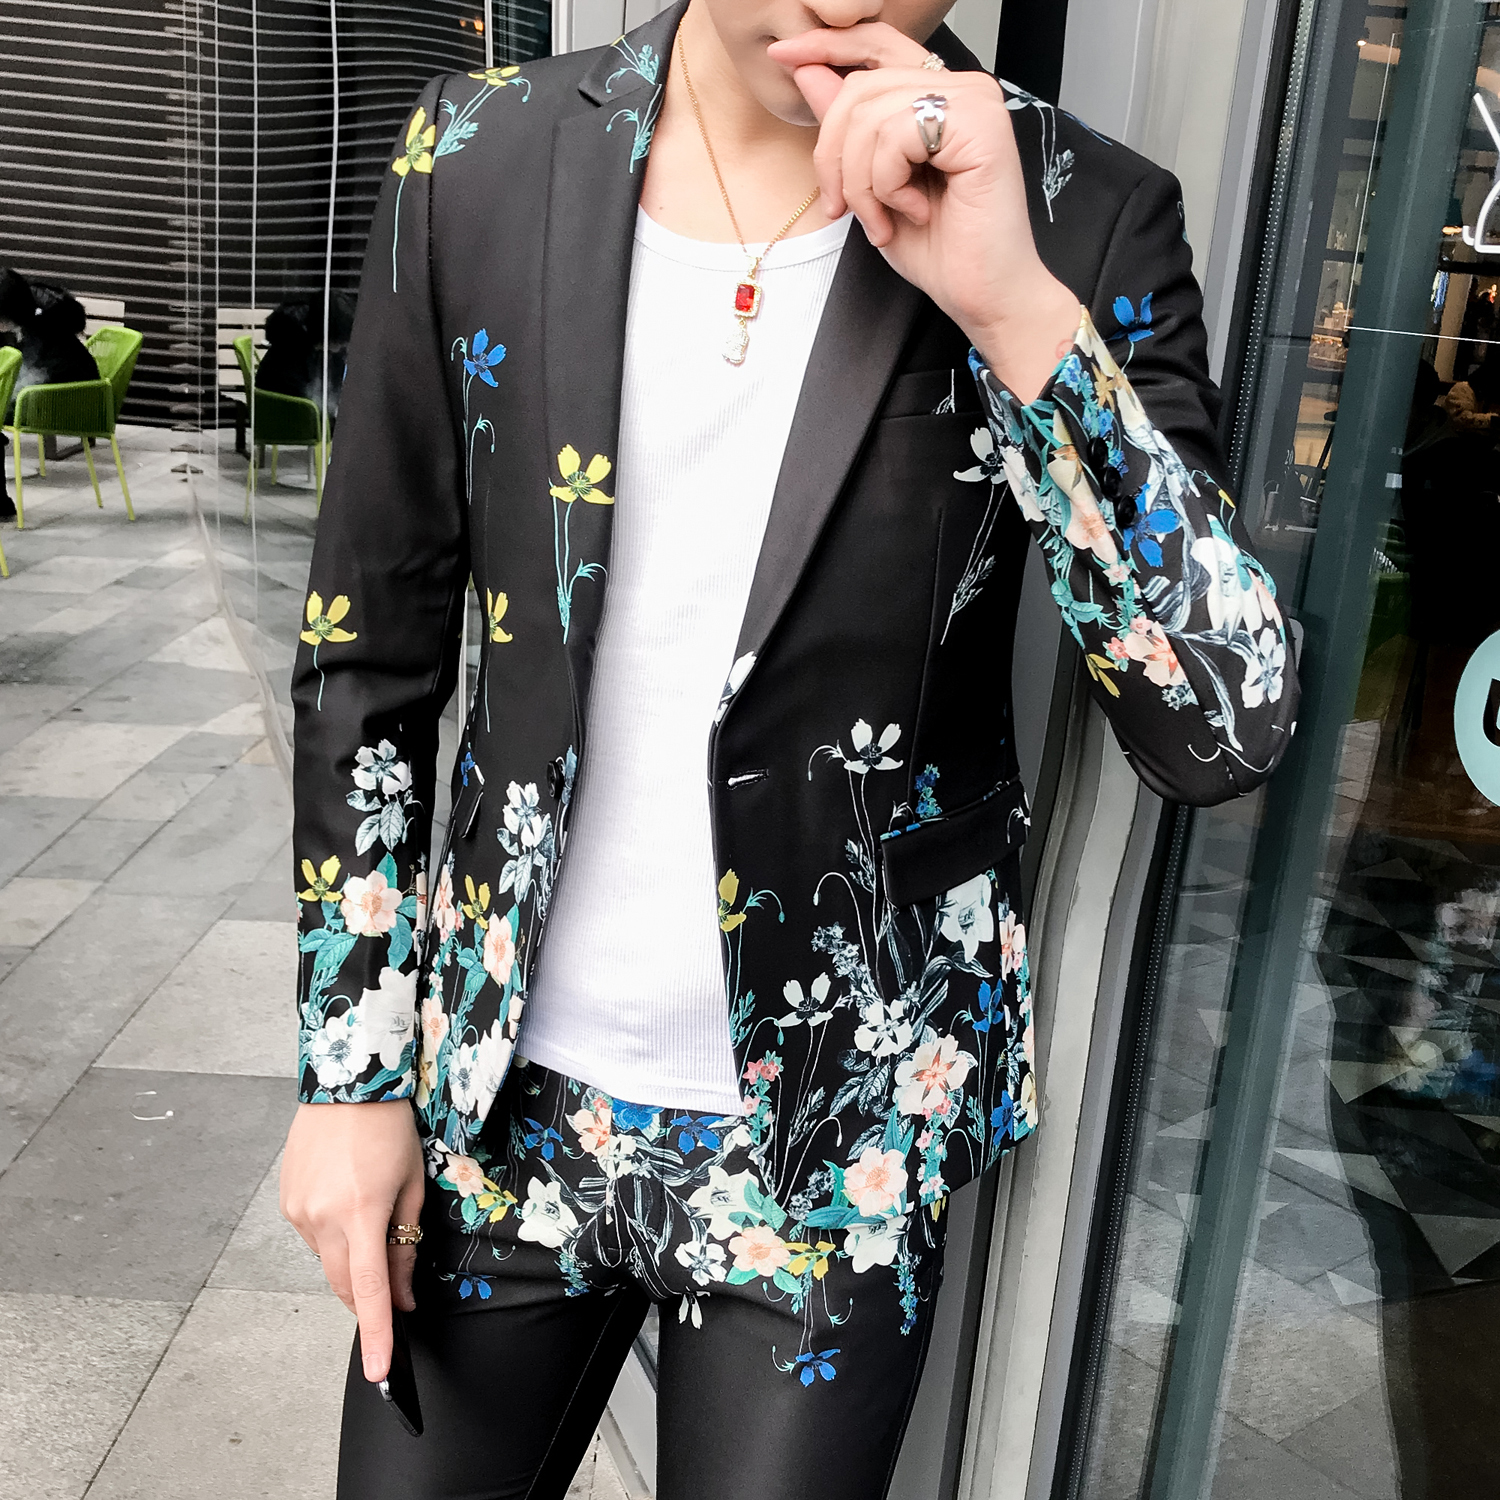 2019 Mens Slim Fit Blazer Jacket Wedding Dress Suit Casual Stylish Blazers For Men Flower Print Dj Singer Blaser Masculino